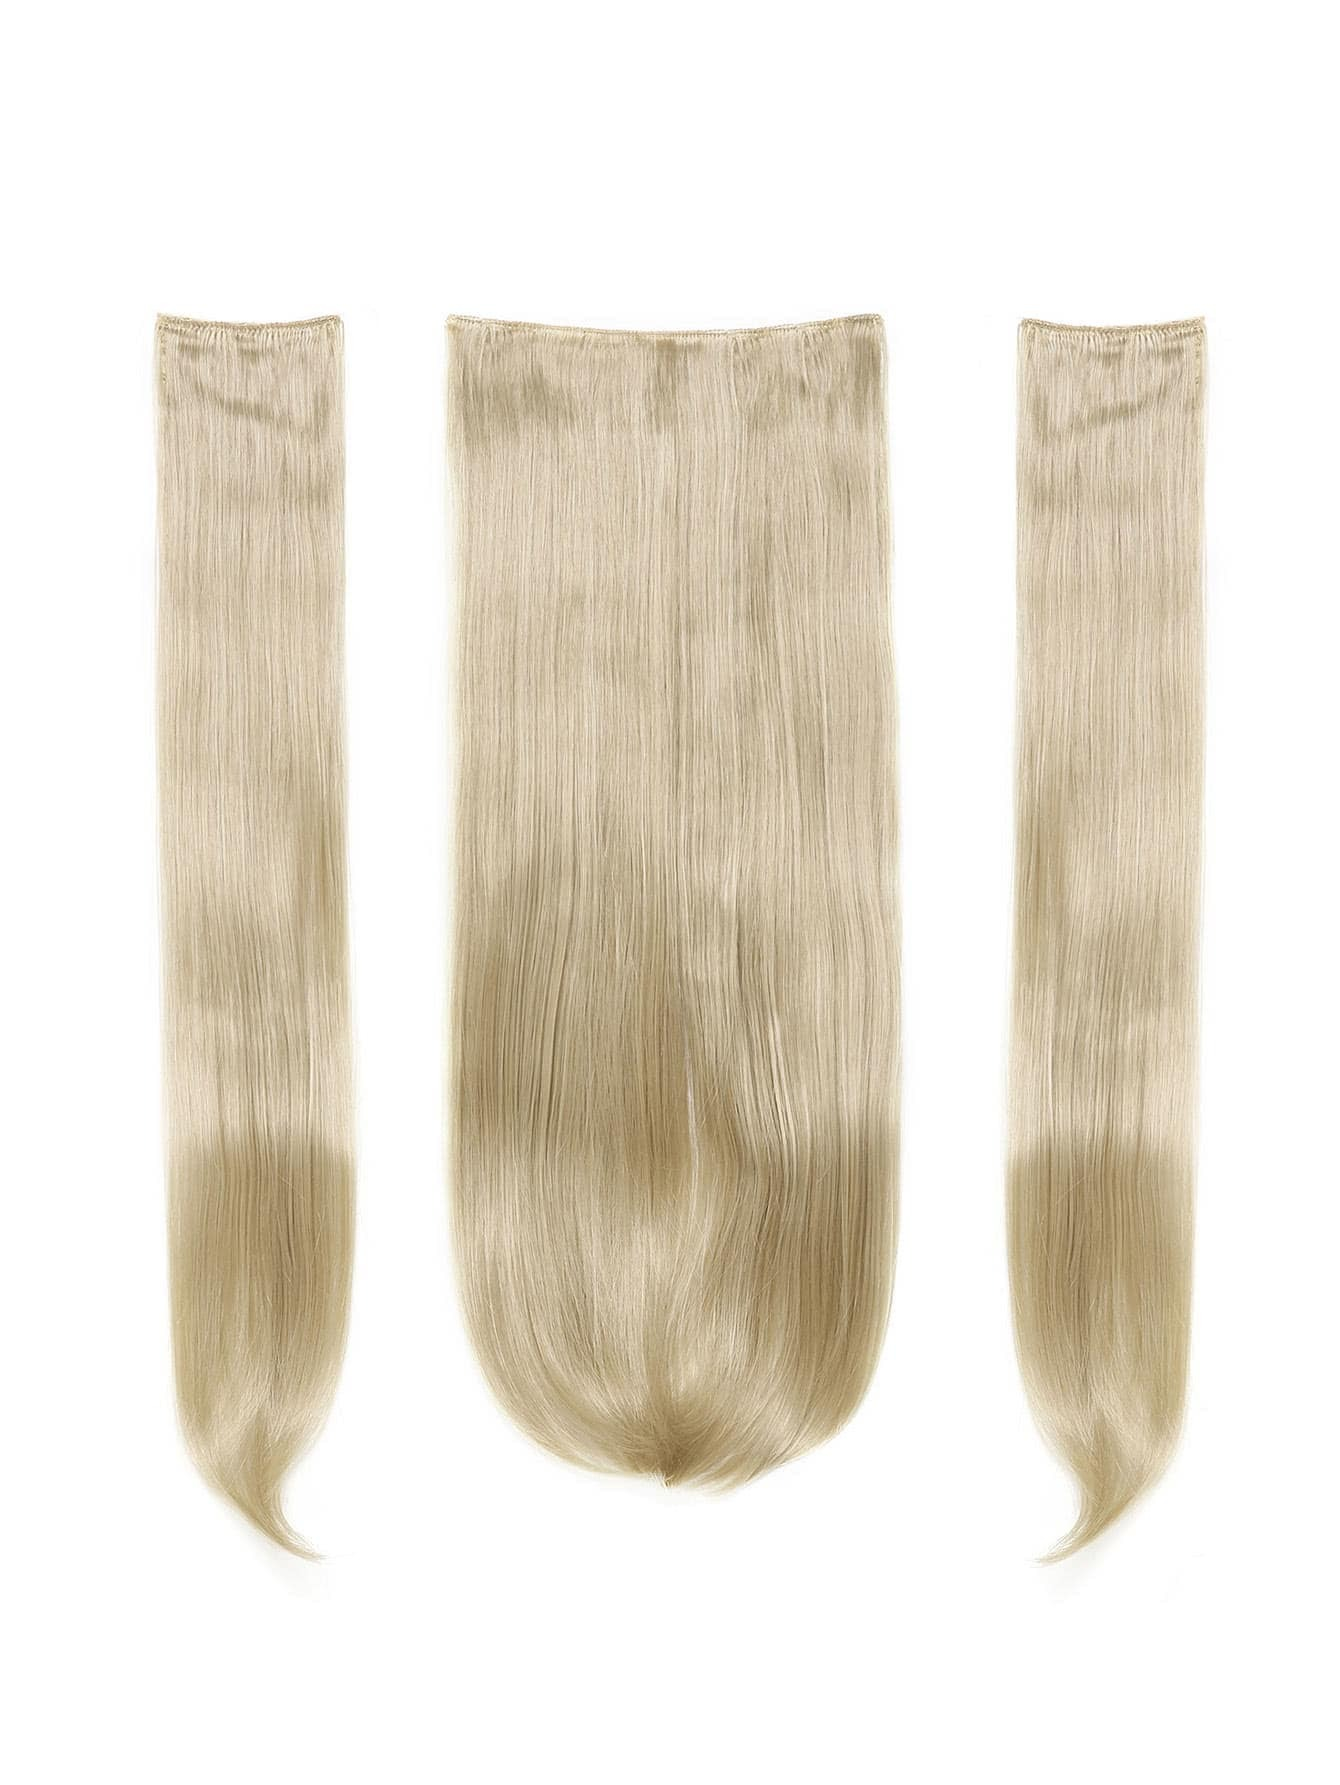 Pure Blonde Clip In Straight Hair Extension 3pcs